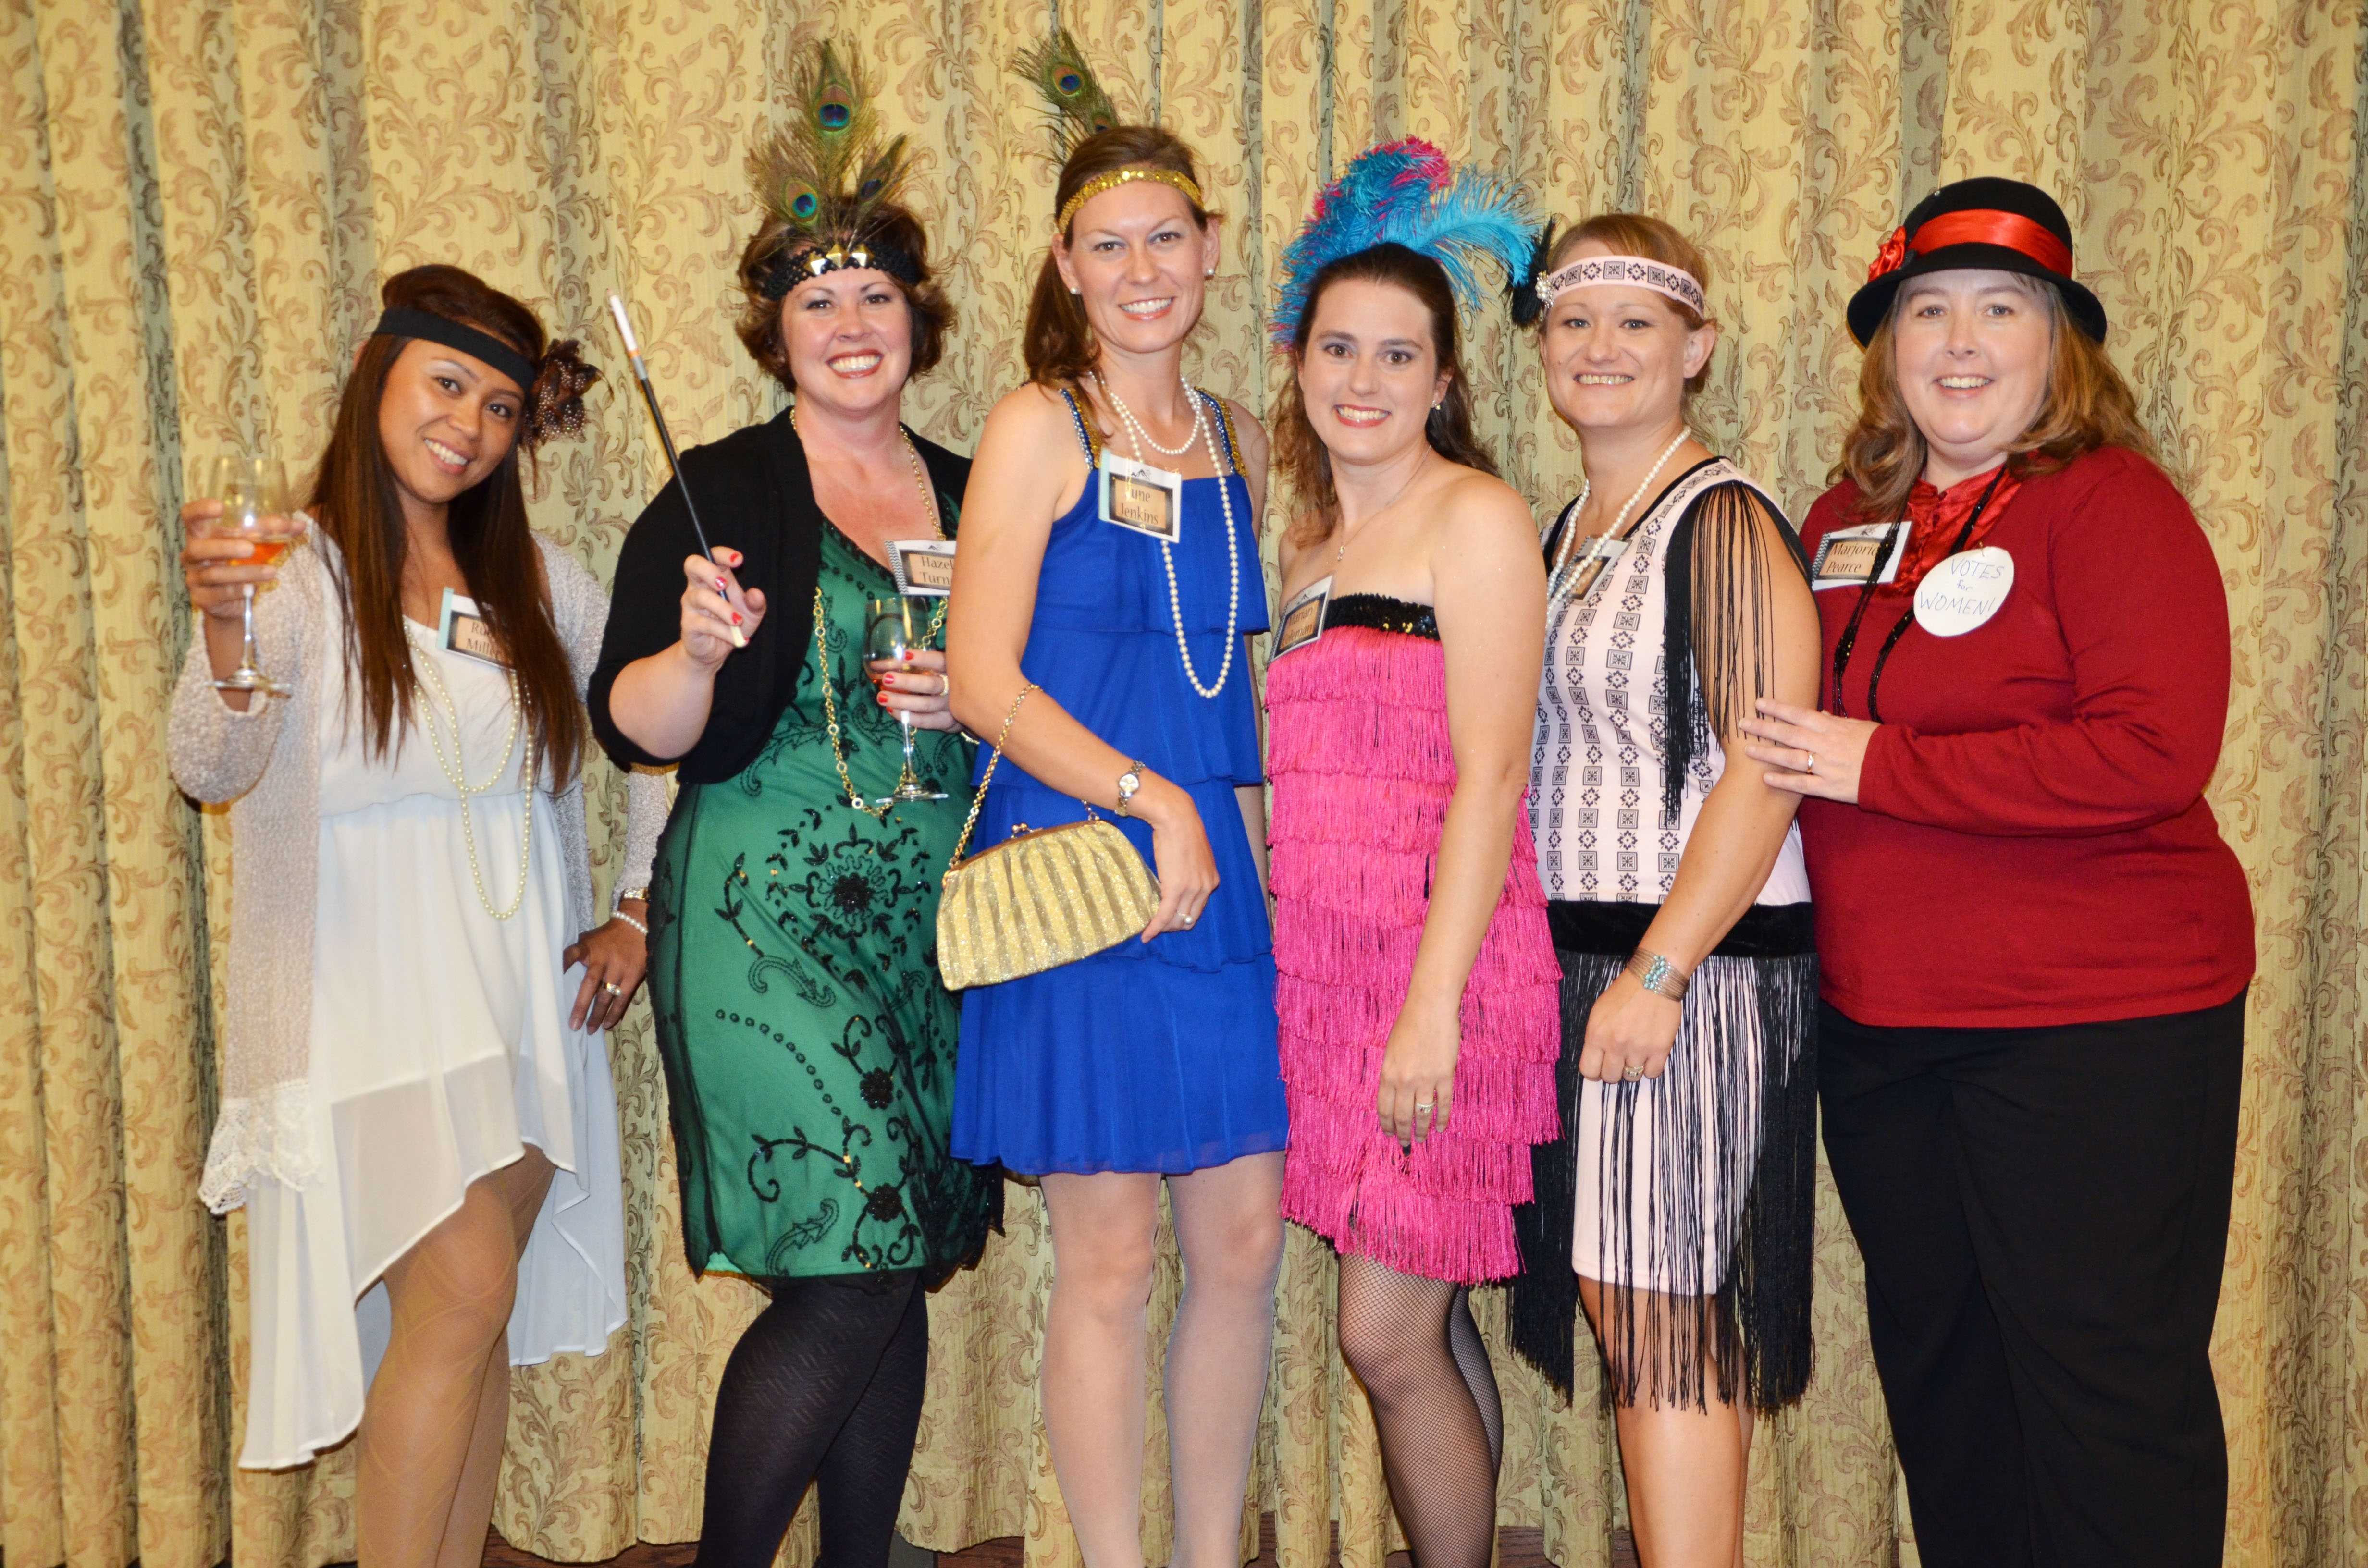 MURDER MYSTERY ACTRESSES